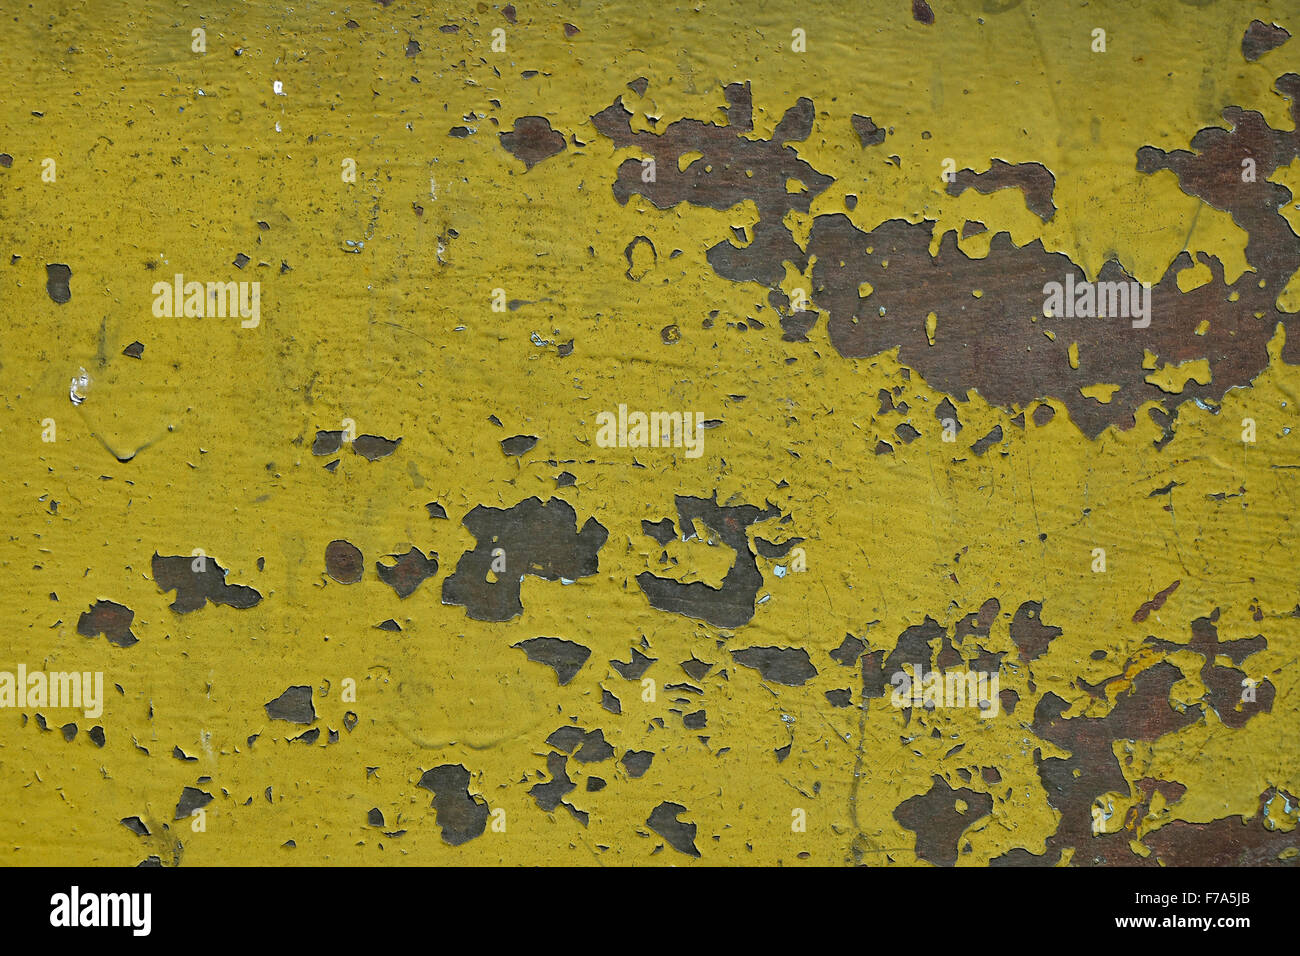 stained corroded rusty yellow khaki painted metal surface with